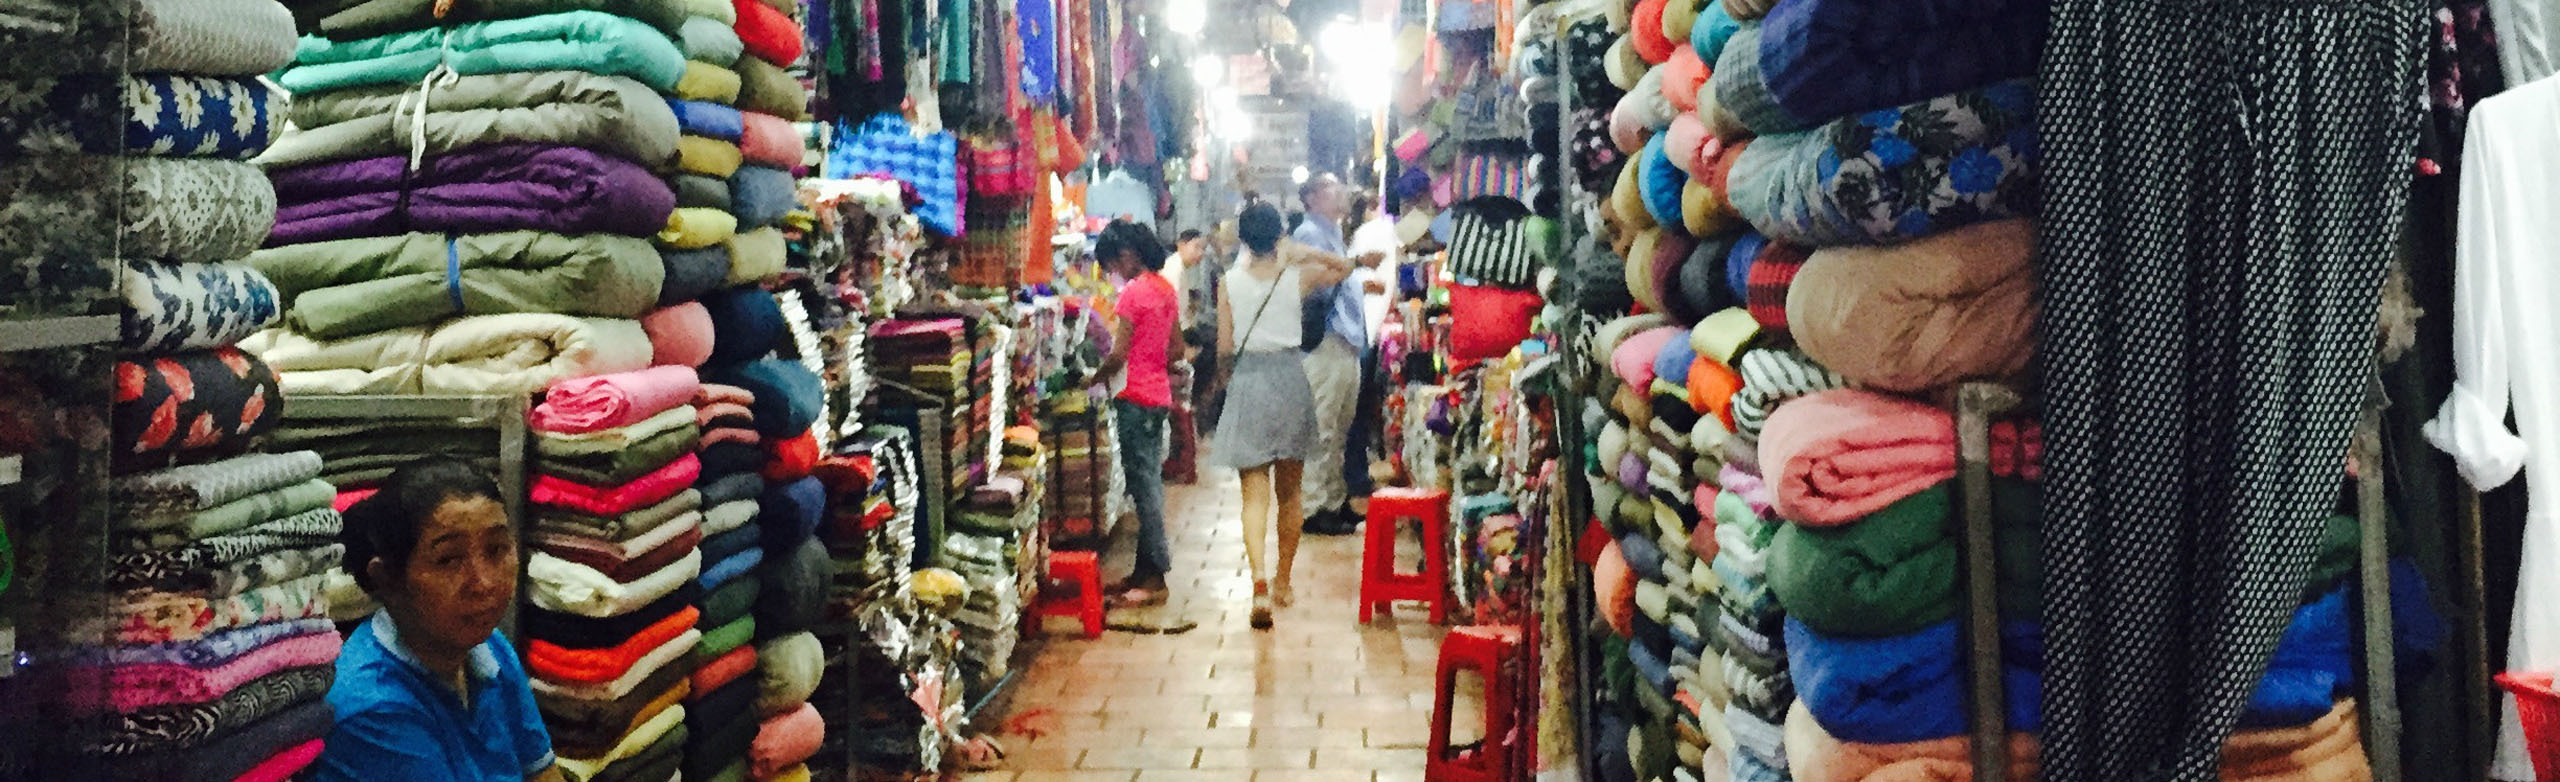 Nightlife in Phnom Penh: Diverse and Exciting